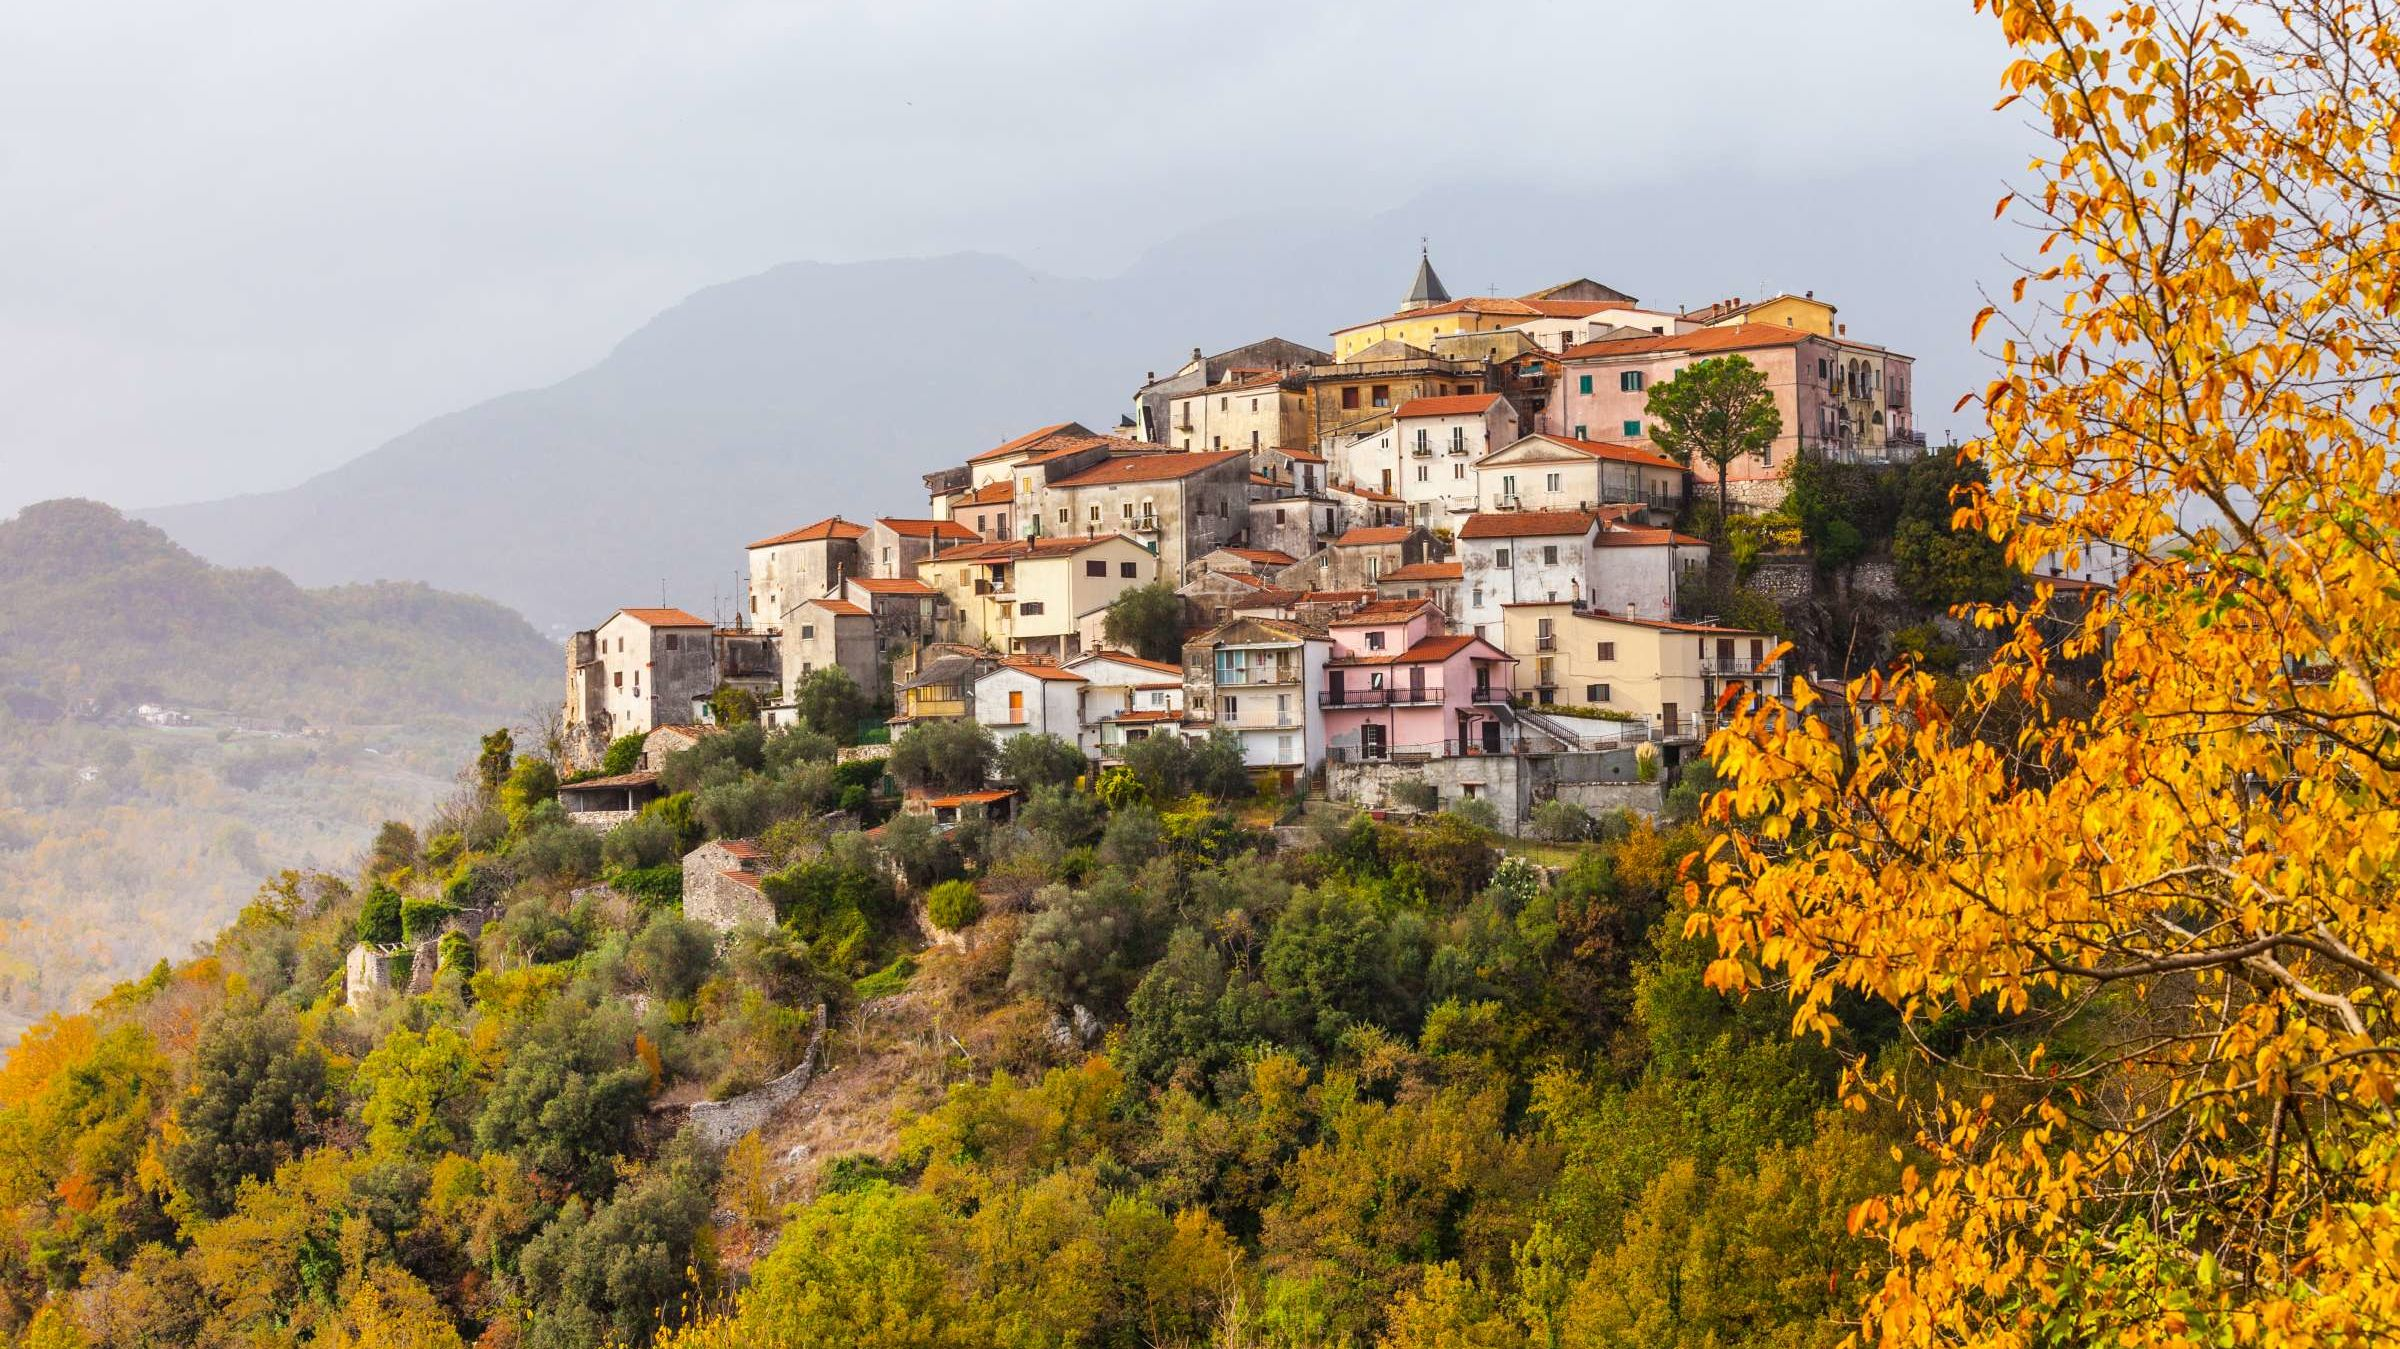 A Picturesque Region of Southern Italy Wants to Pay People $770 a Month to Move There